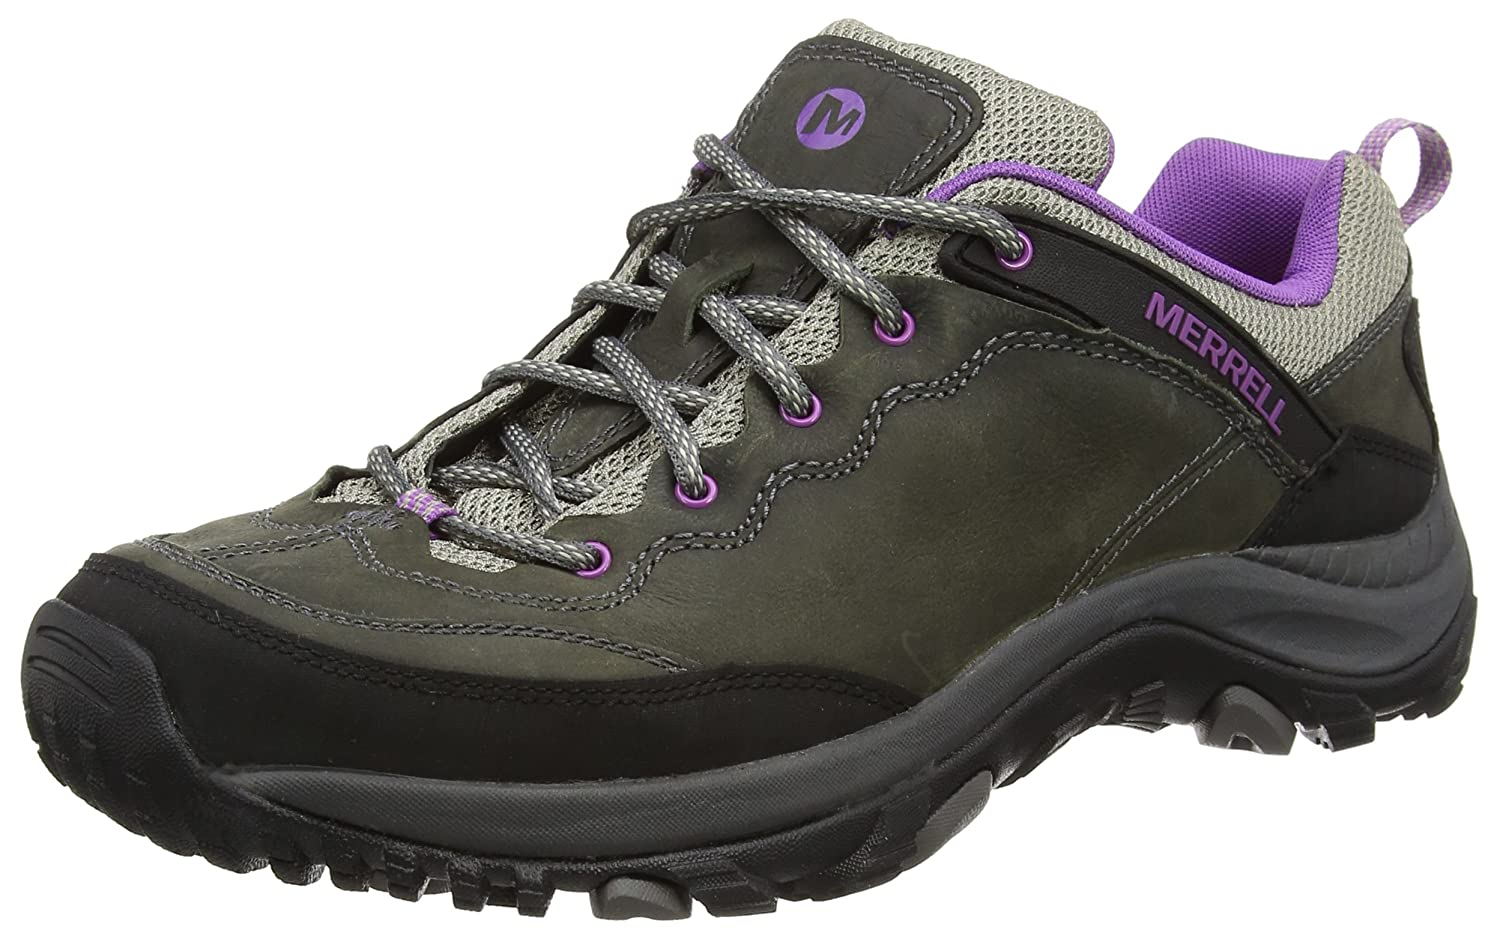 d3d1124ff1 Merrell Salida Trekker, Women's Speed Laces Trekking and Hiking Shoes:  Amazon.co.uk: Shoes & Bags